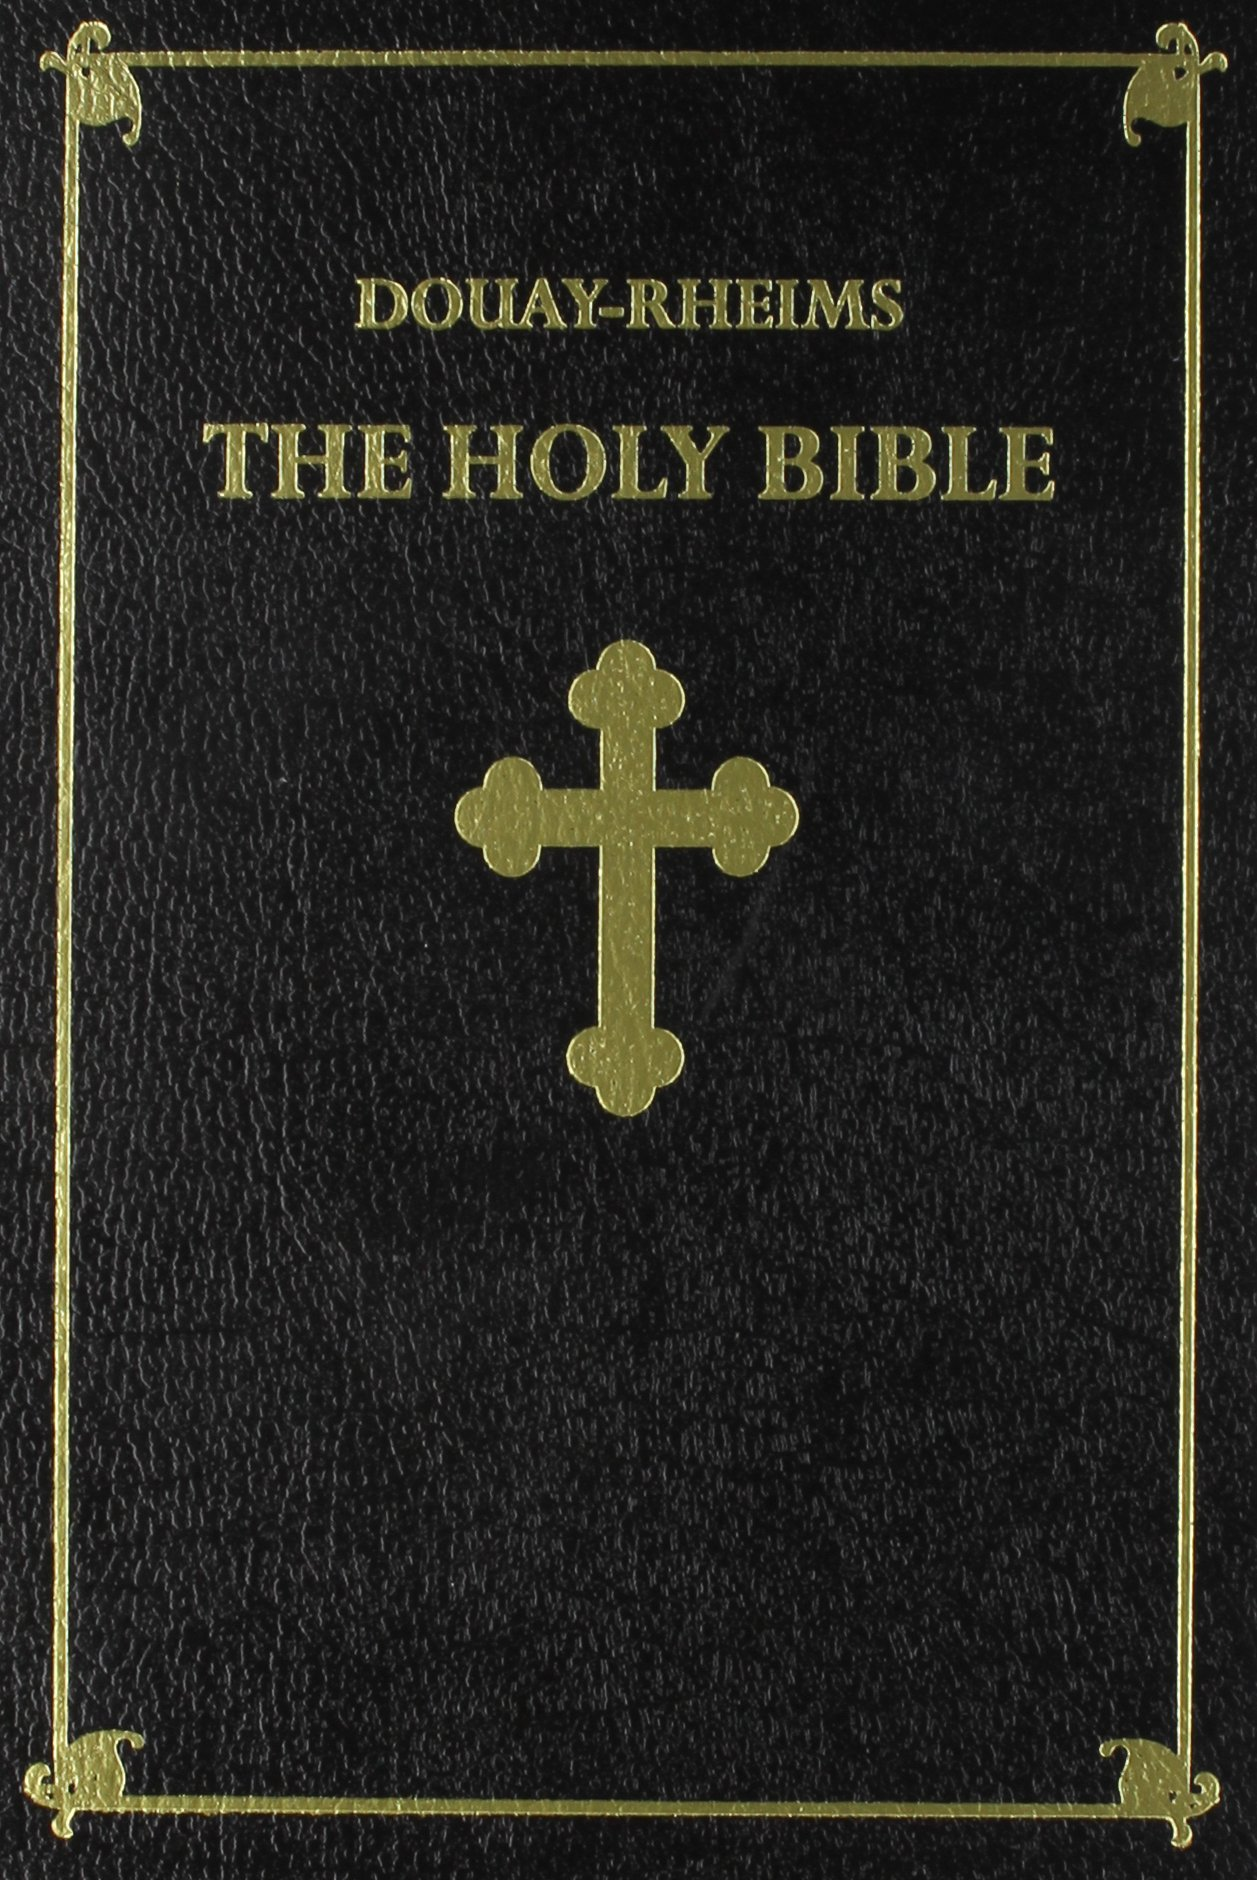 Douay-Rheims Bible $39.95